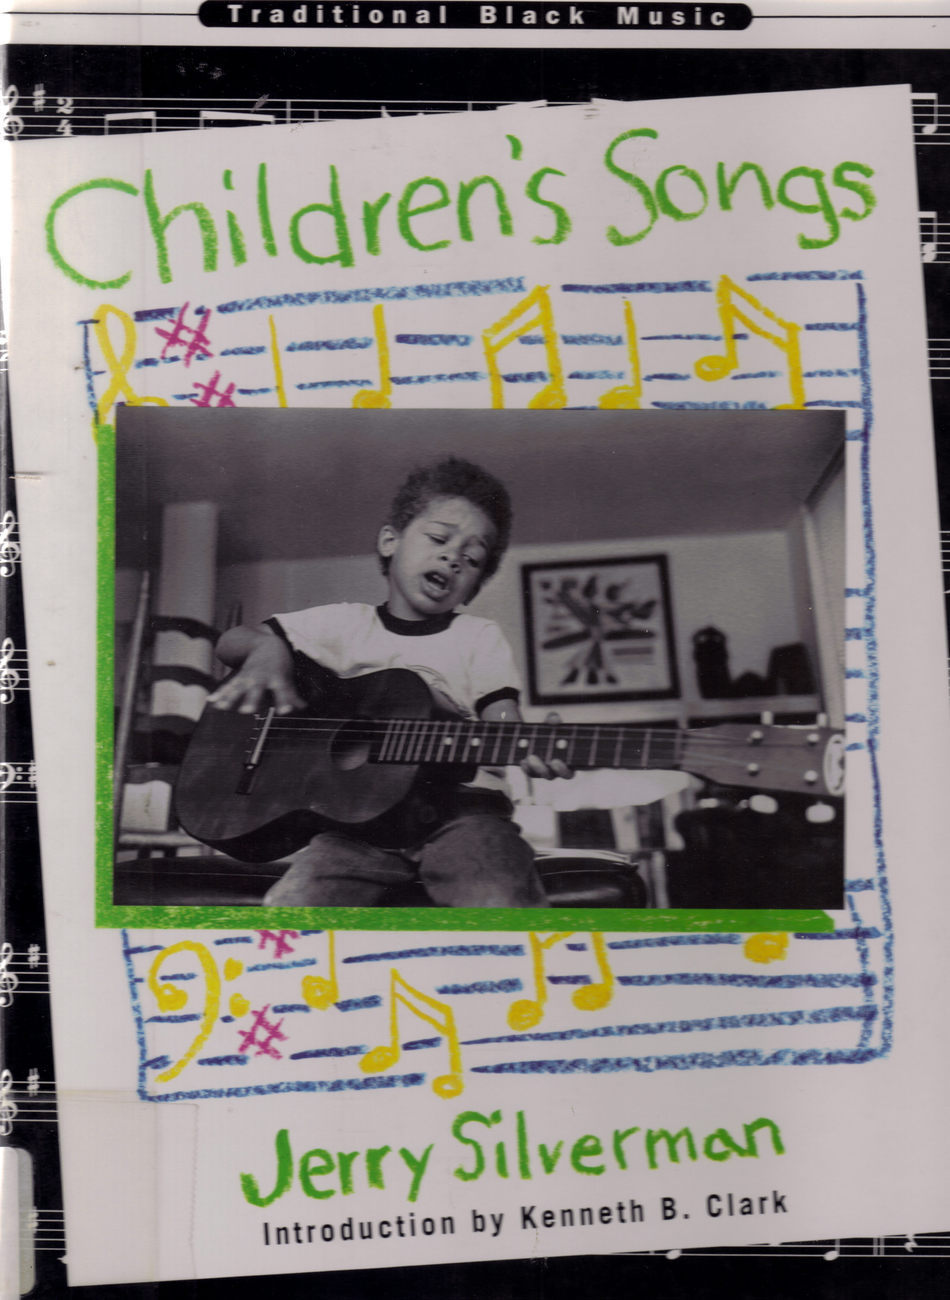 Childrens song